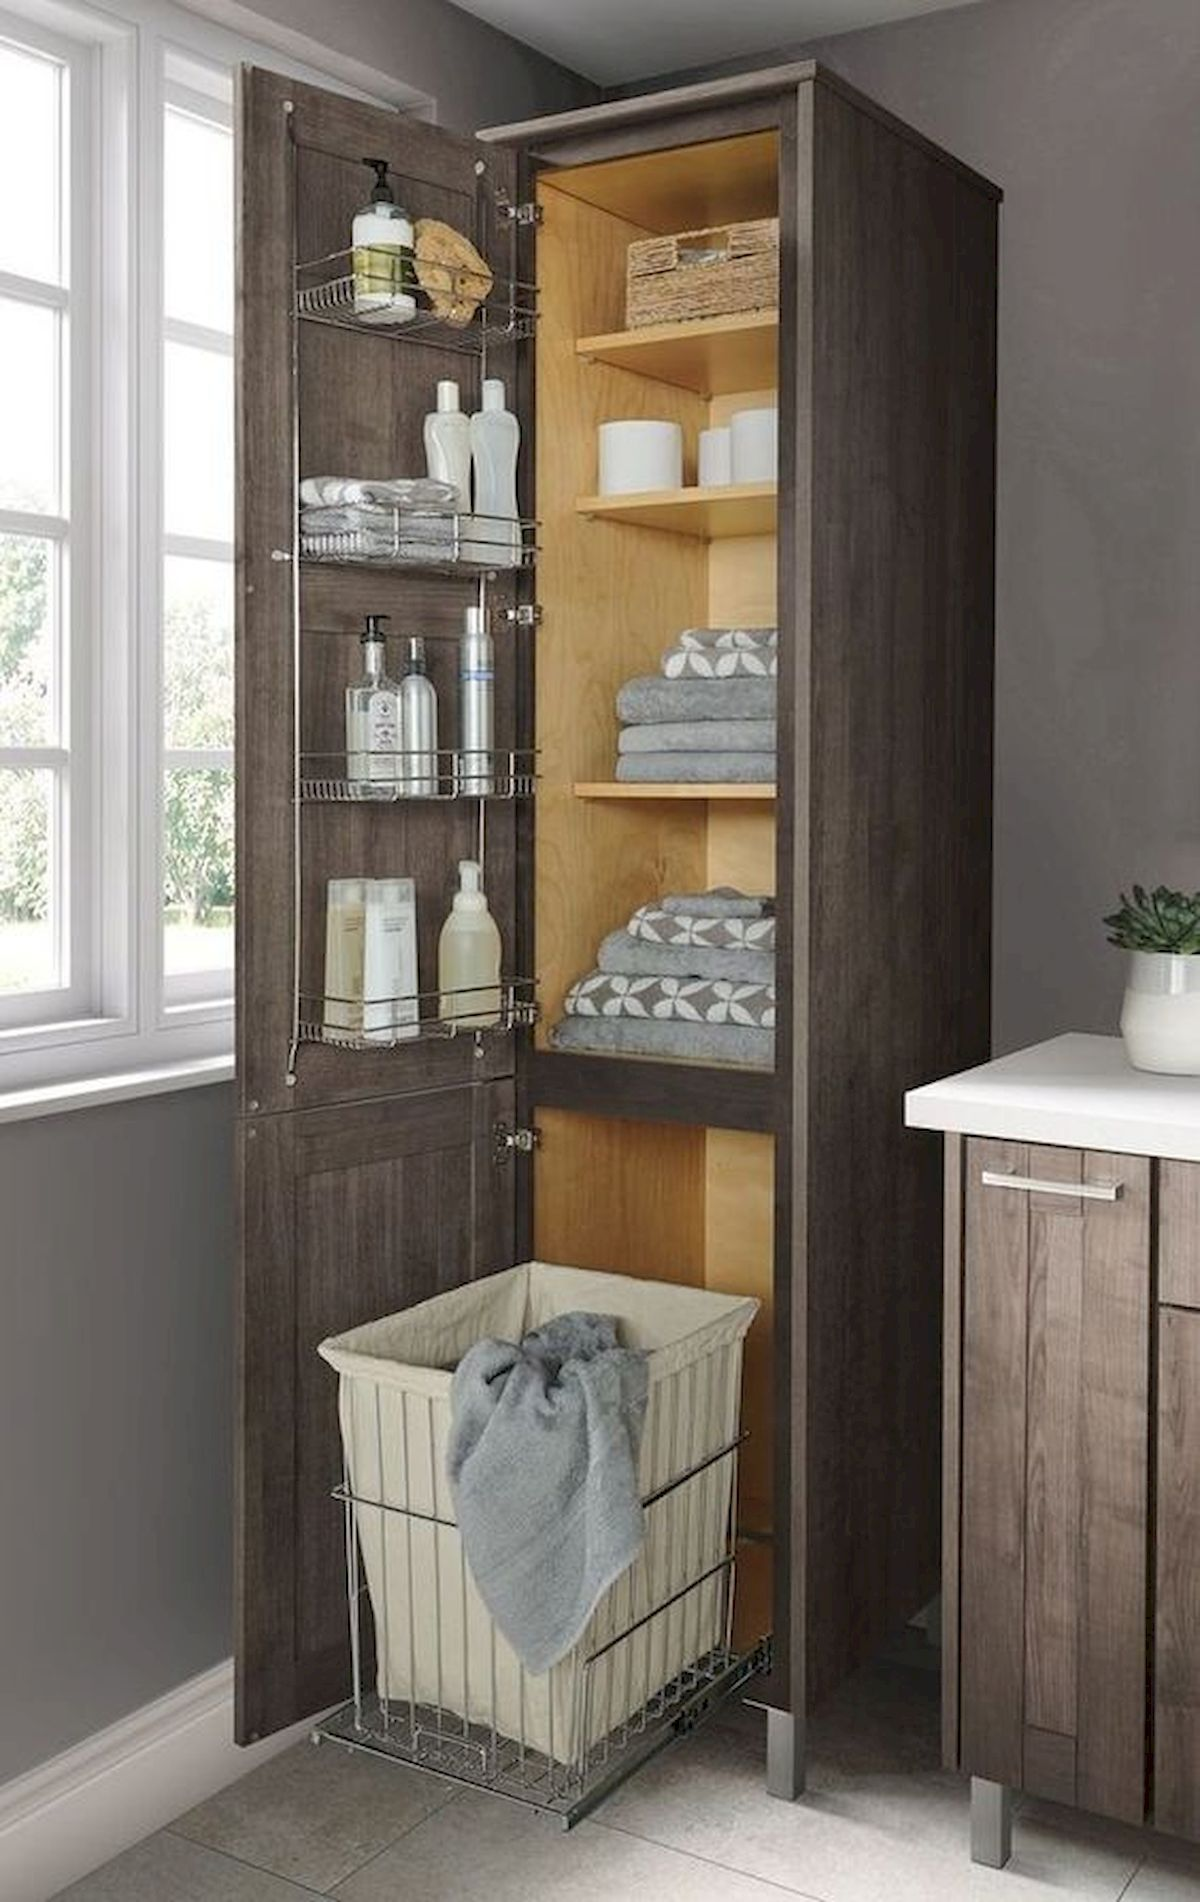 Photo of 50 Best DIY Storage Design Ideas to Maximize Your Small Bathroom Space